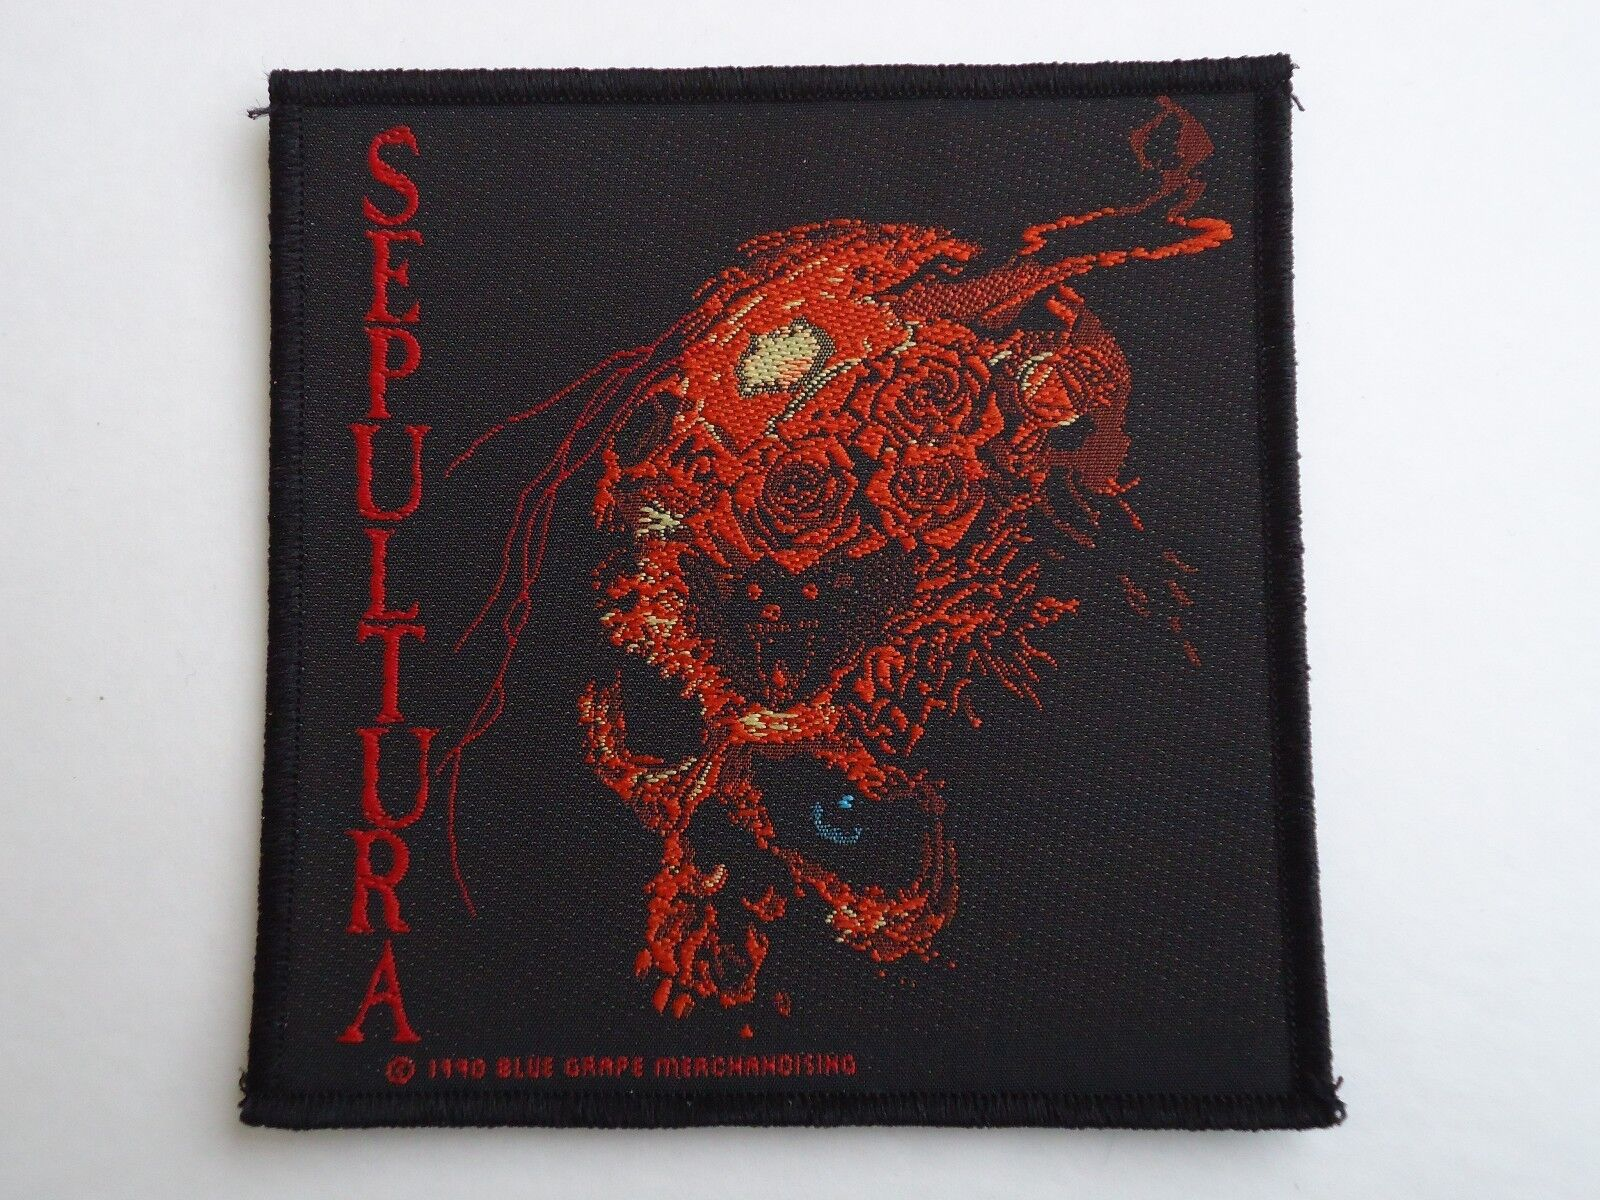 SEPULTURA BENEATH THE REMAINS WOVEN PATCH